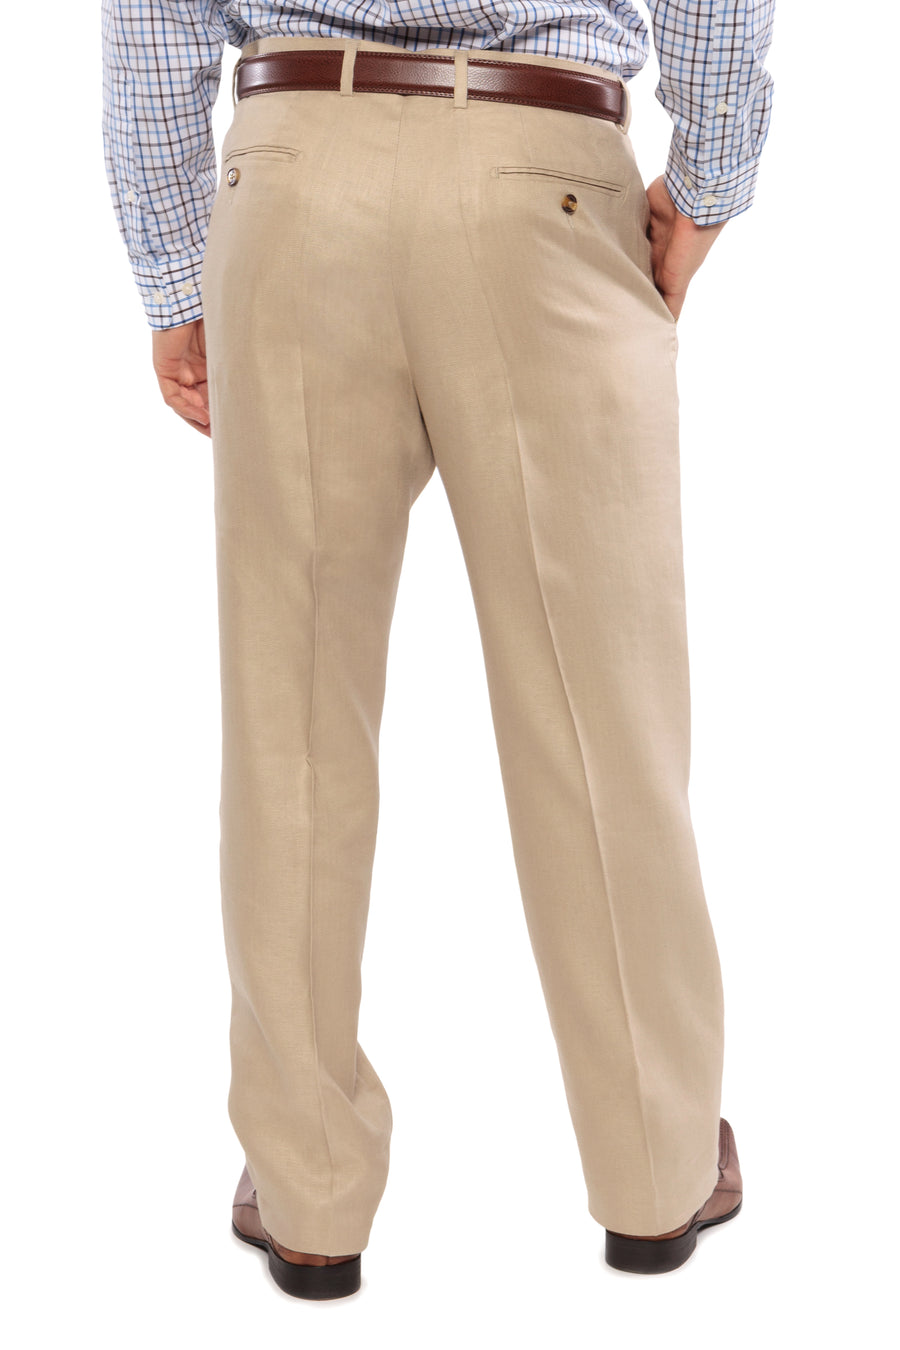 Venizano - Men's Adjustable Linen Dress Pants - TexereSilk